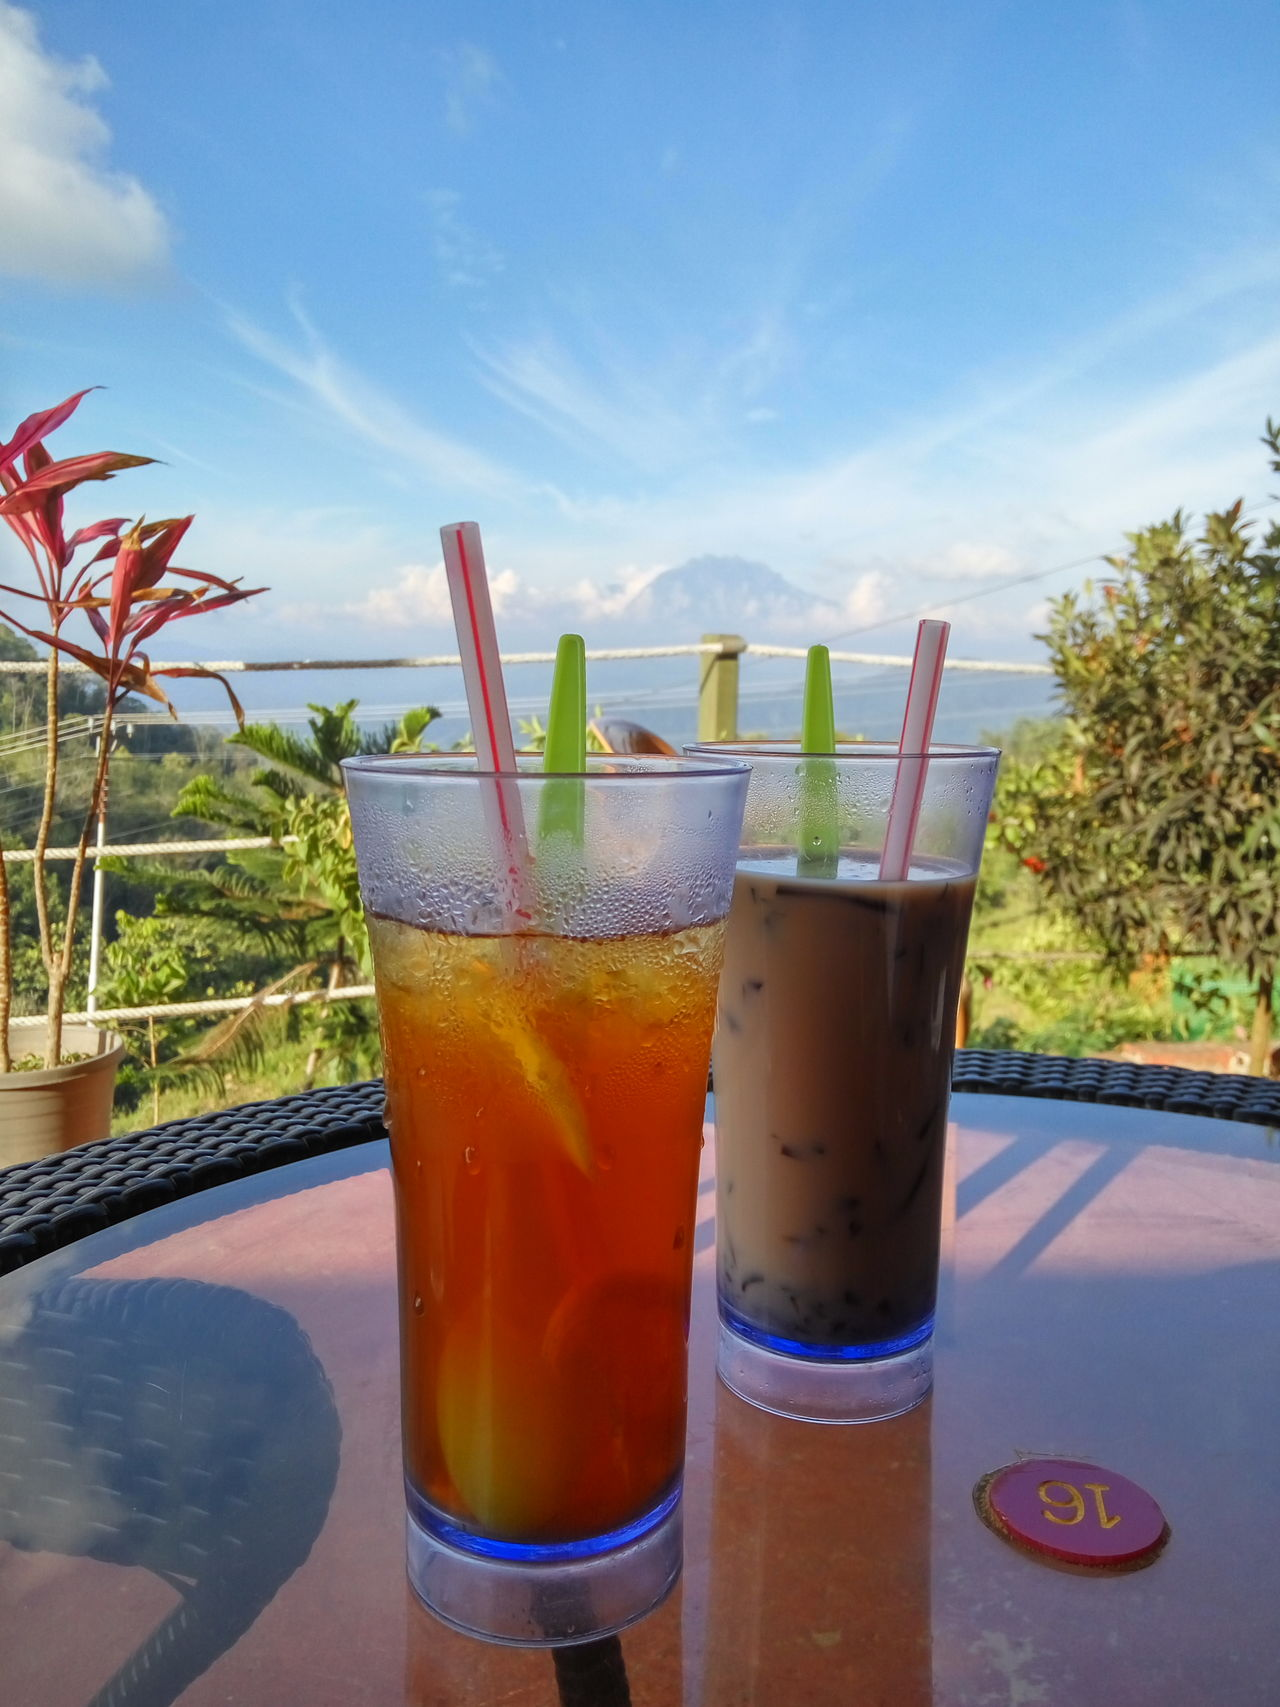 Enjoying the view from Kokol Farmstay. Refreshment Cold Temperature Sky Outdoors Day Food And Drink First Eyeem Photo Ice Lemon Tea First Eyeem Photos